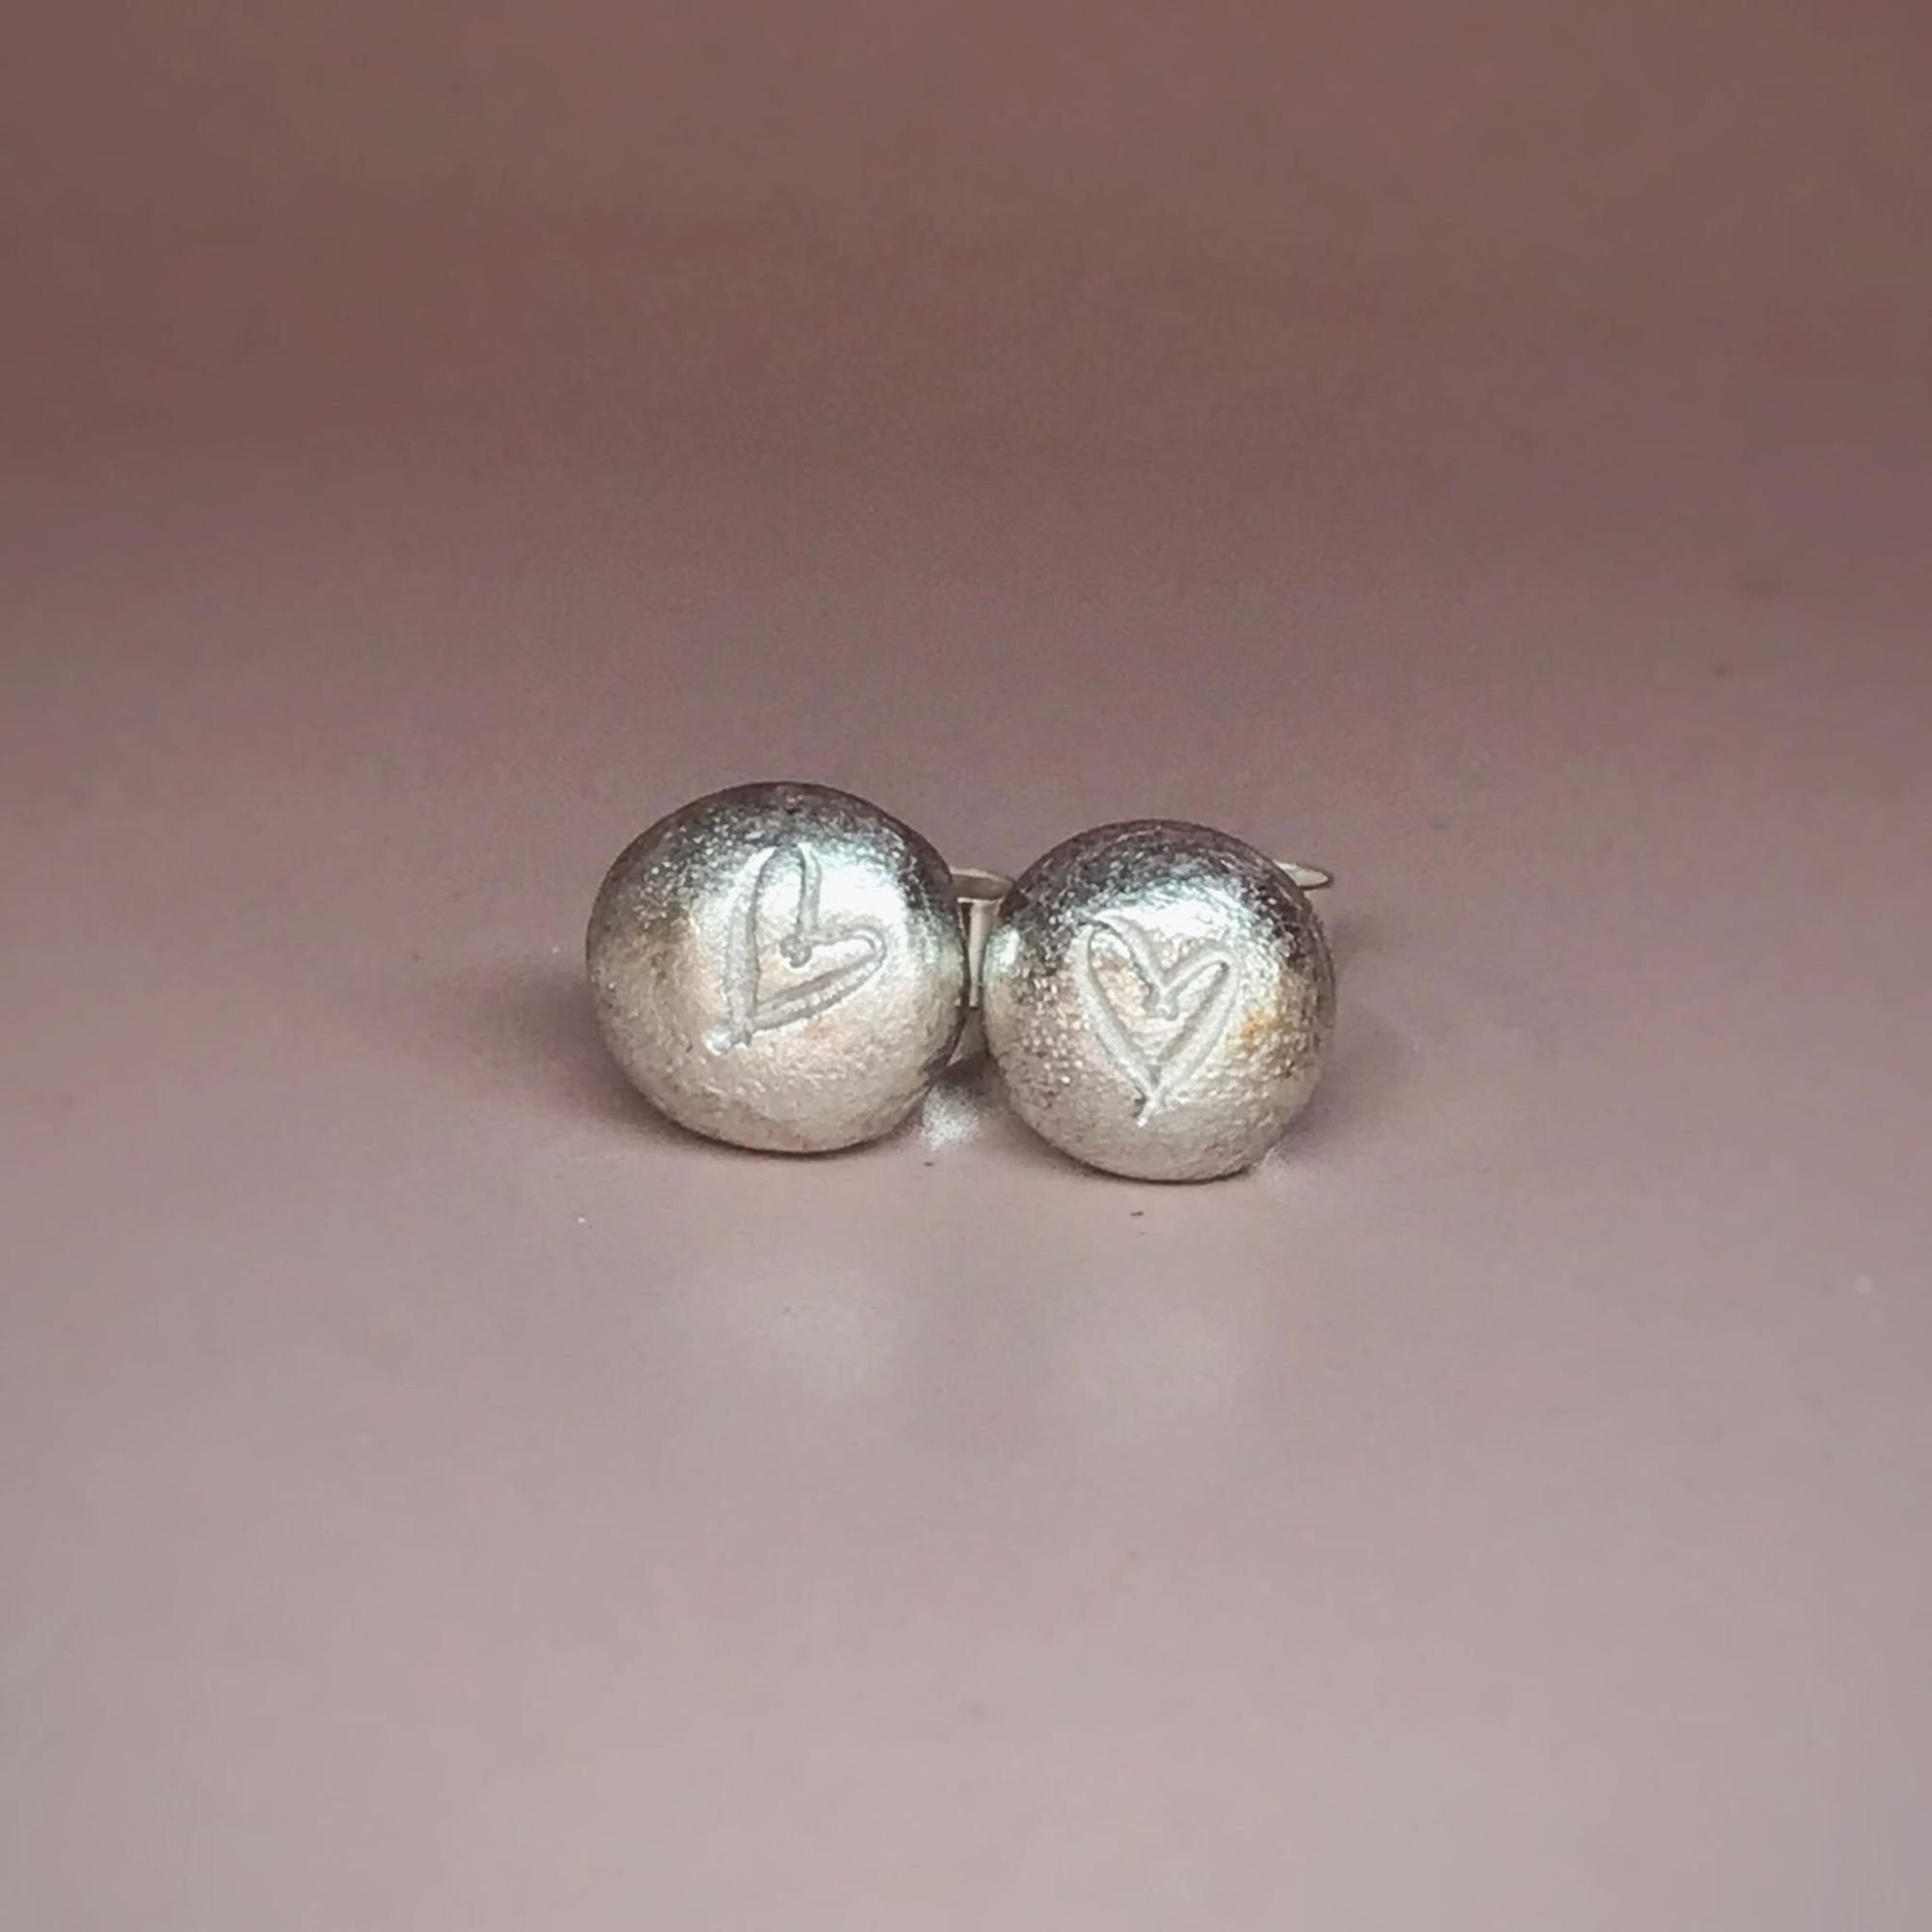 Round silver stud earrings with hand stamped heart detail.